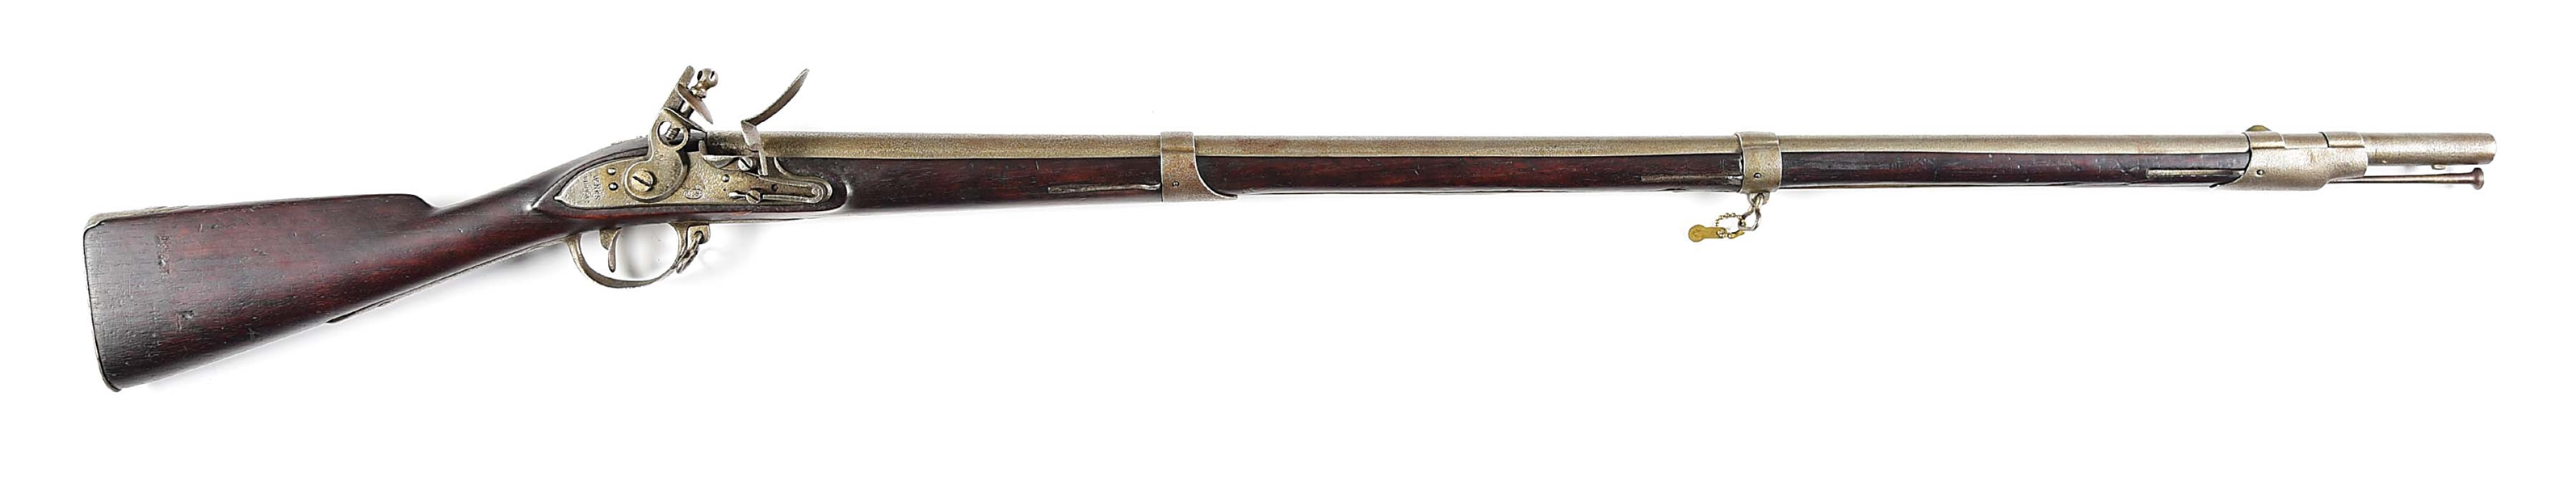 (A) W.N & S OF PHILADELPHIA MODEL 1808 FLINTLOCK .69 CALIBER RIFLE.